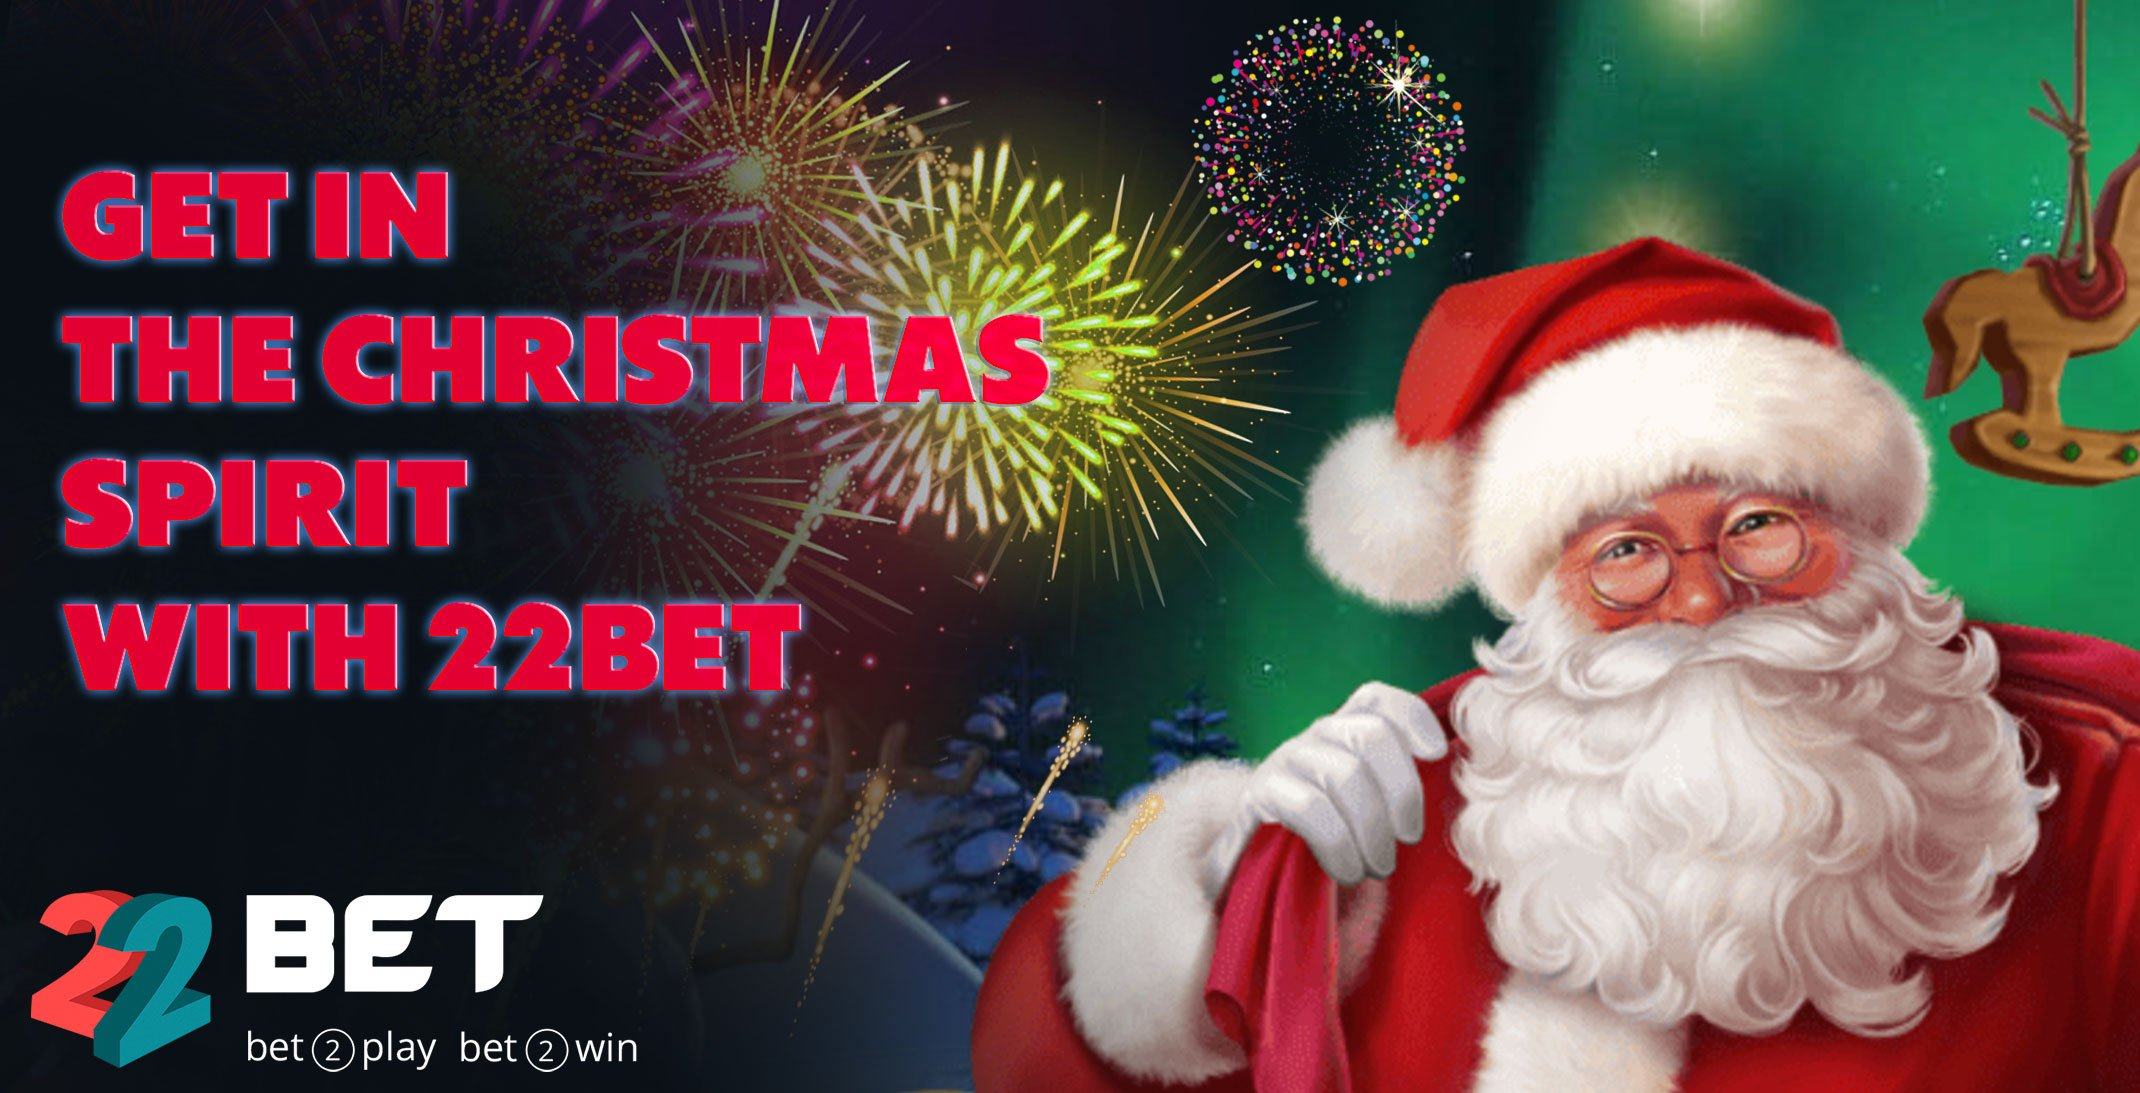 Get in the Christmas Spirit with 22Bet! Take Part in 22Bet Christmas Lottery